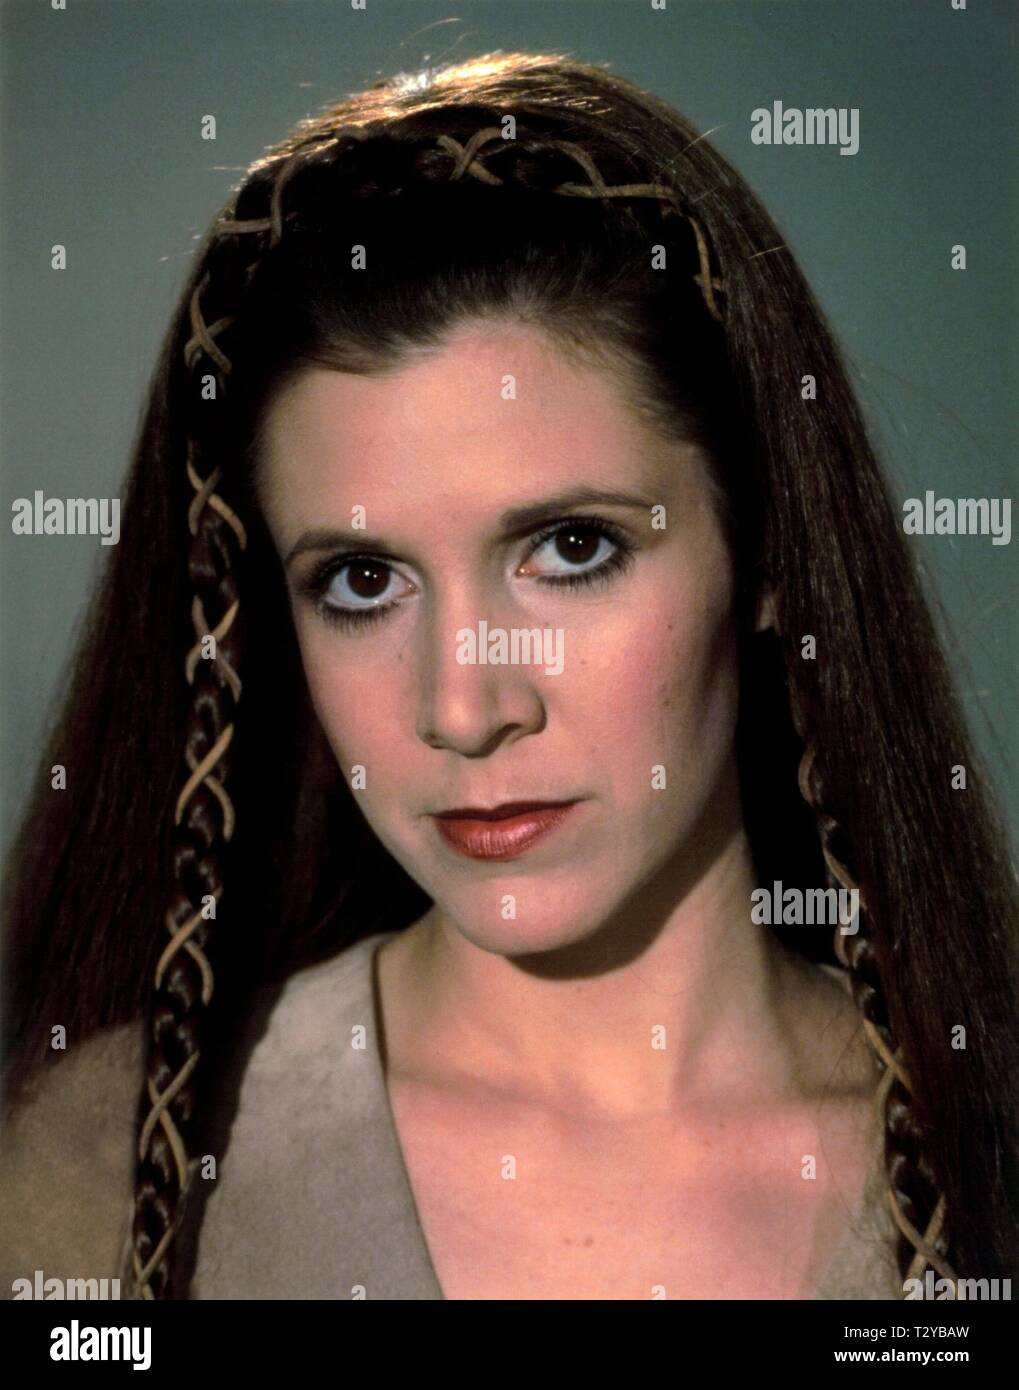 CARRIE FISHER, STAR WARS: EPISODE VI - RETURN OF THE JEDI, 1983 - Stock Image